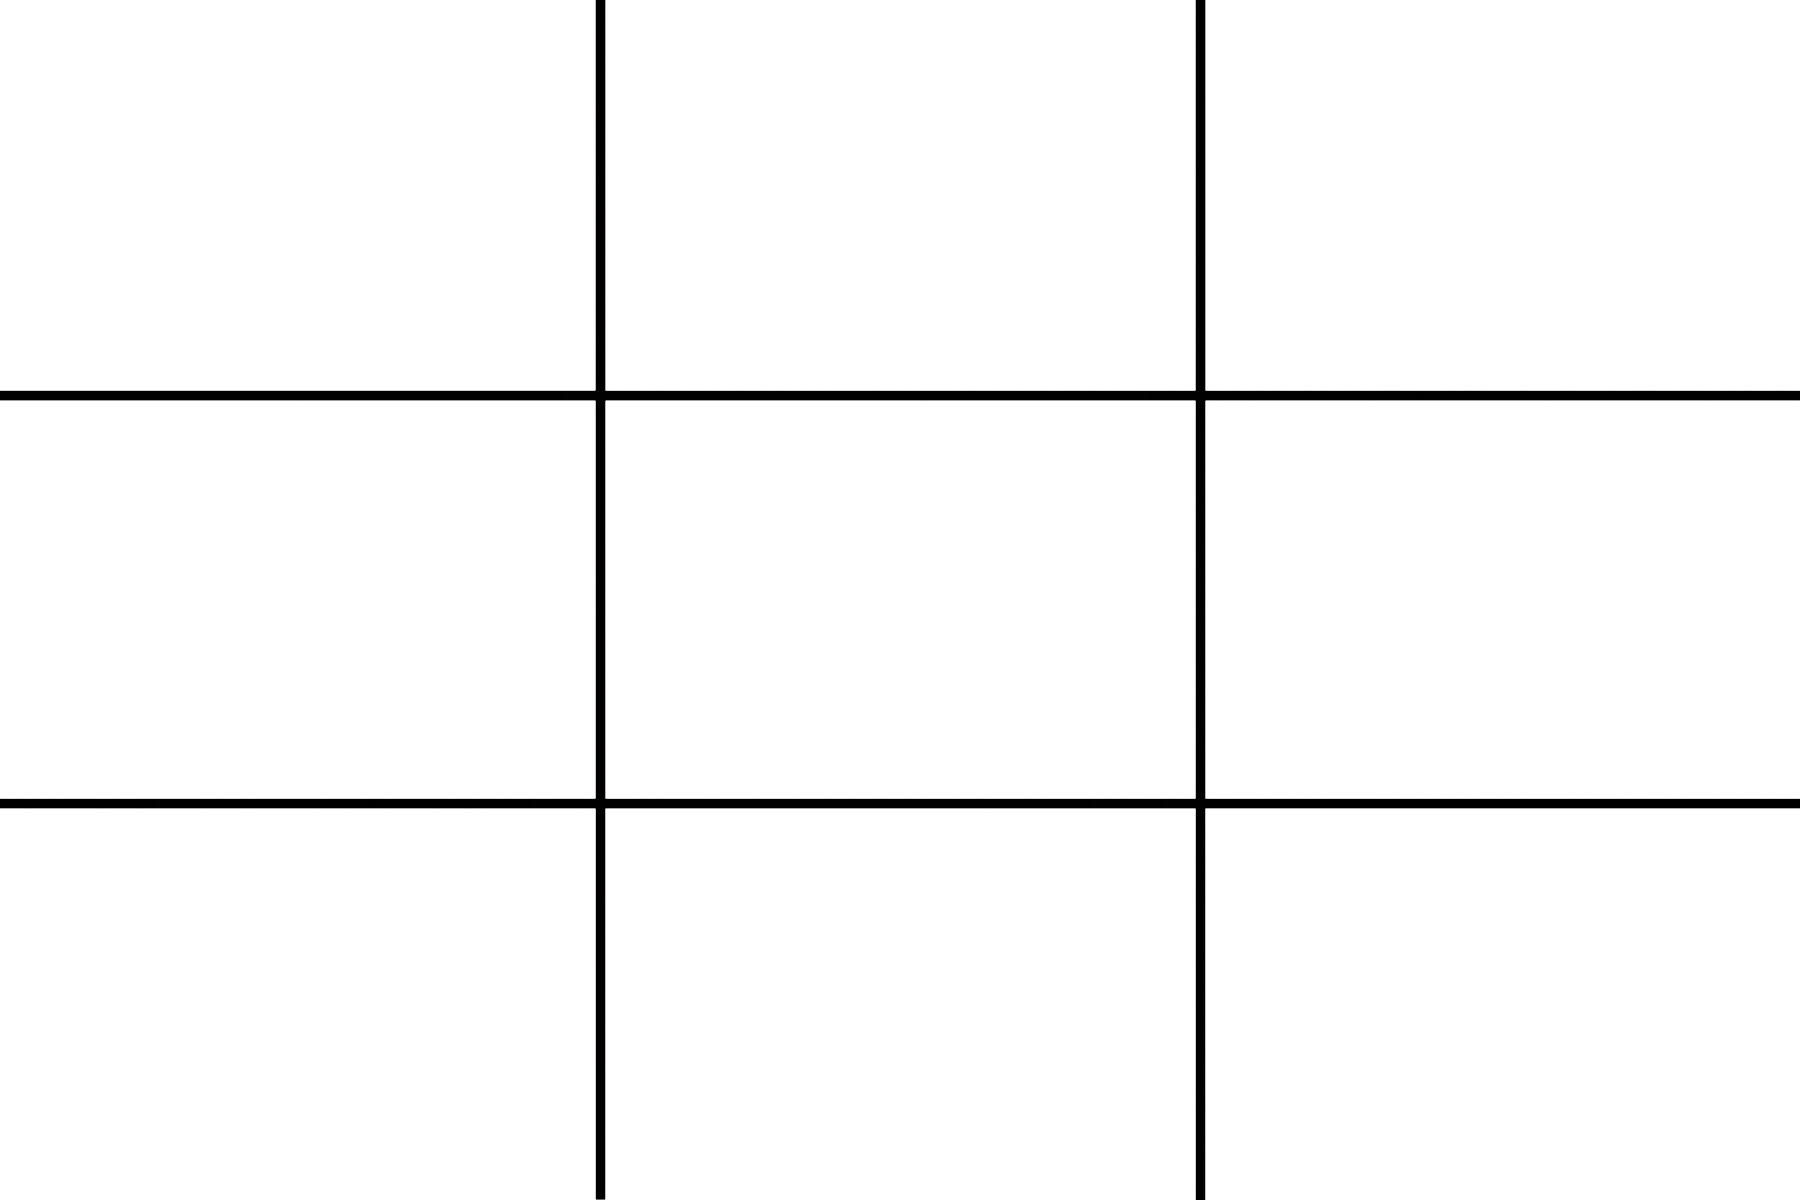 Rule of thirds grid png. Photography composition rules and